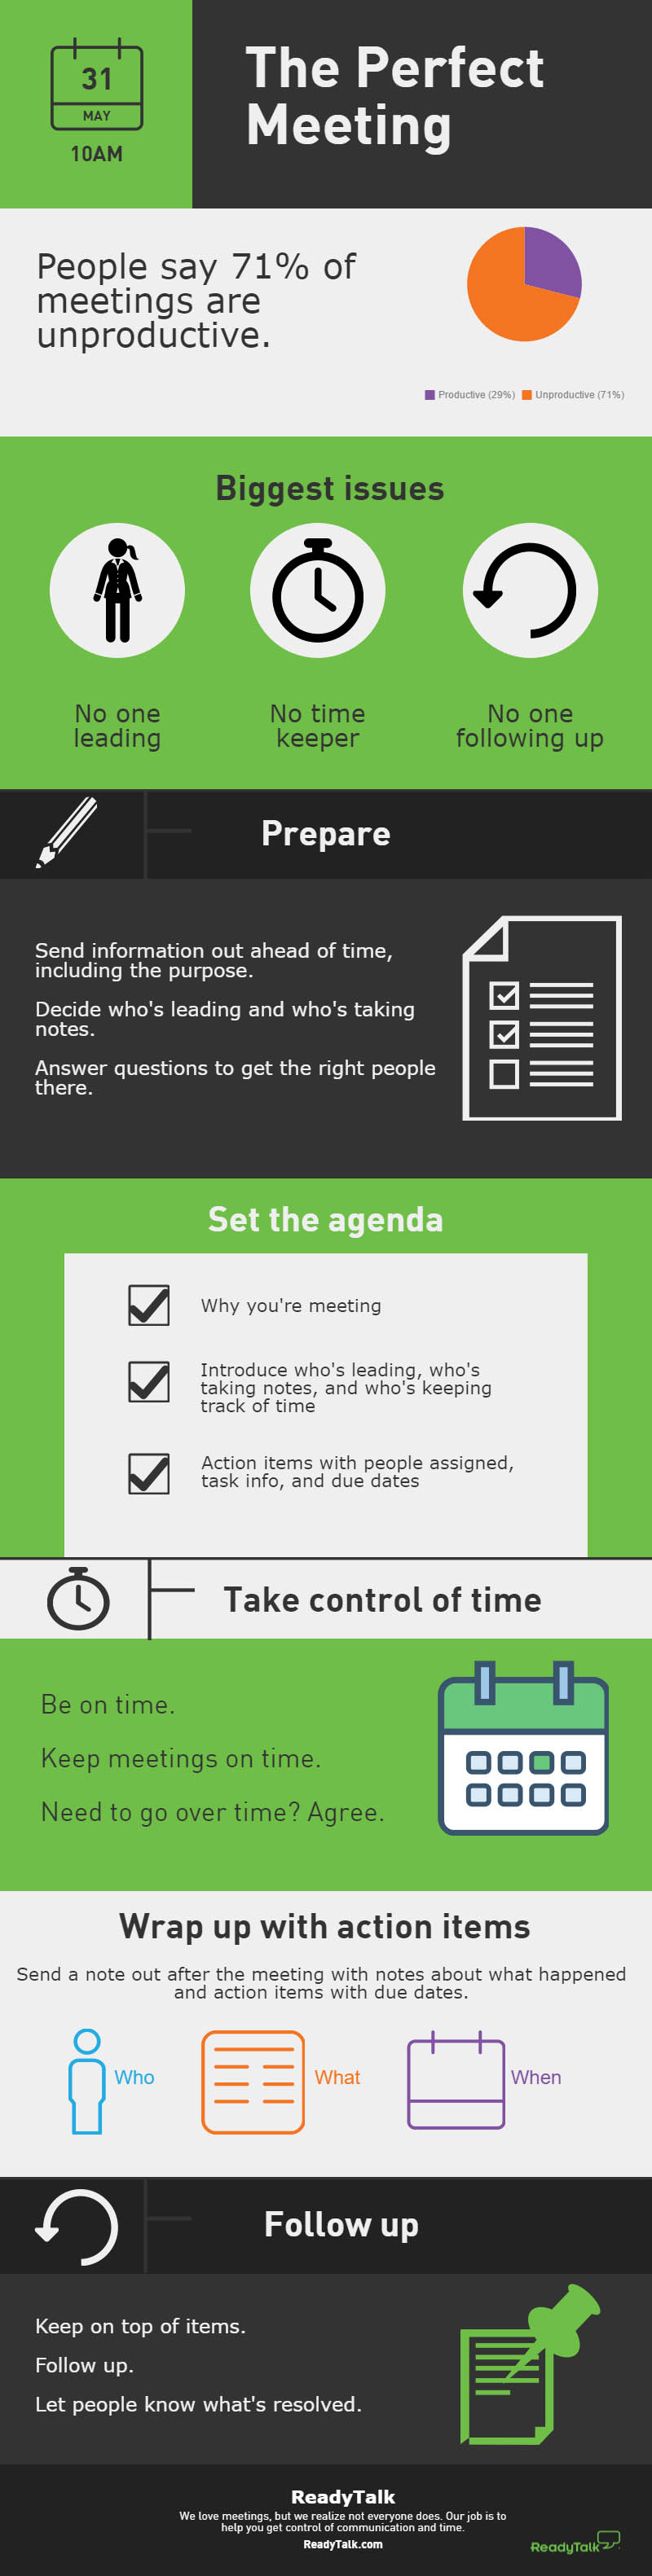 How to have a perfect meeting